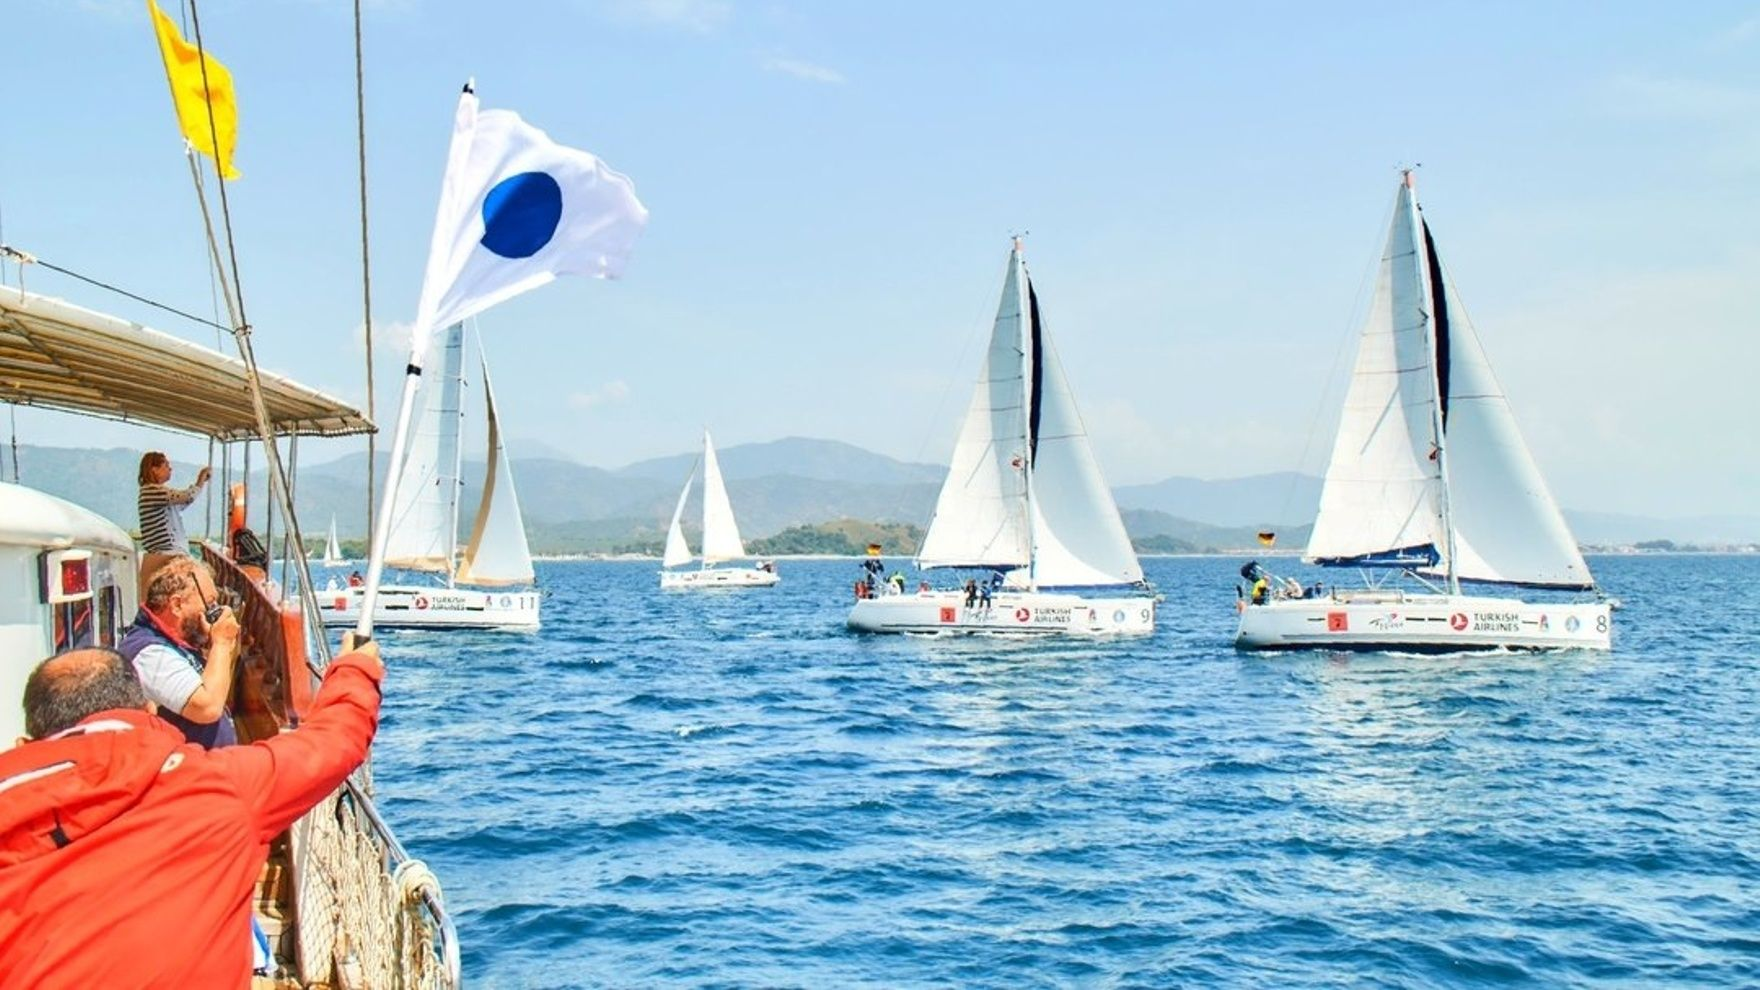 Training flotilla in Bodrum